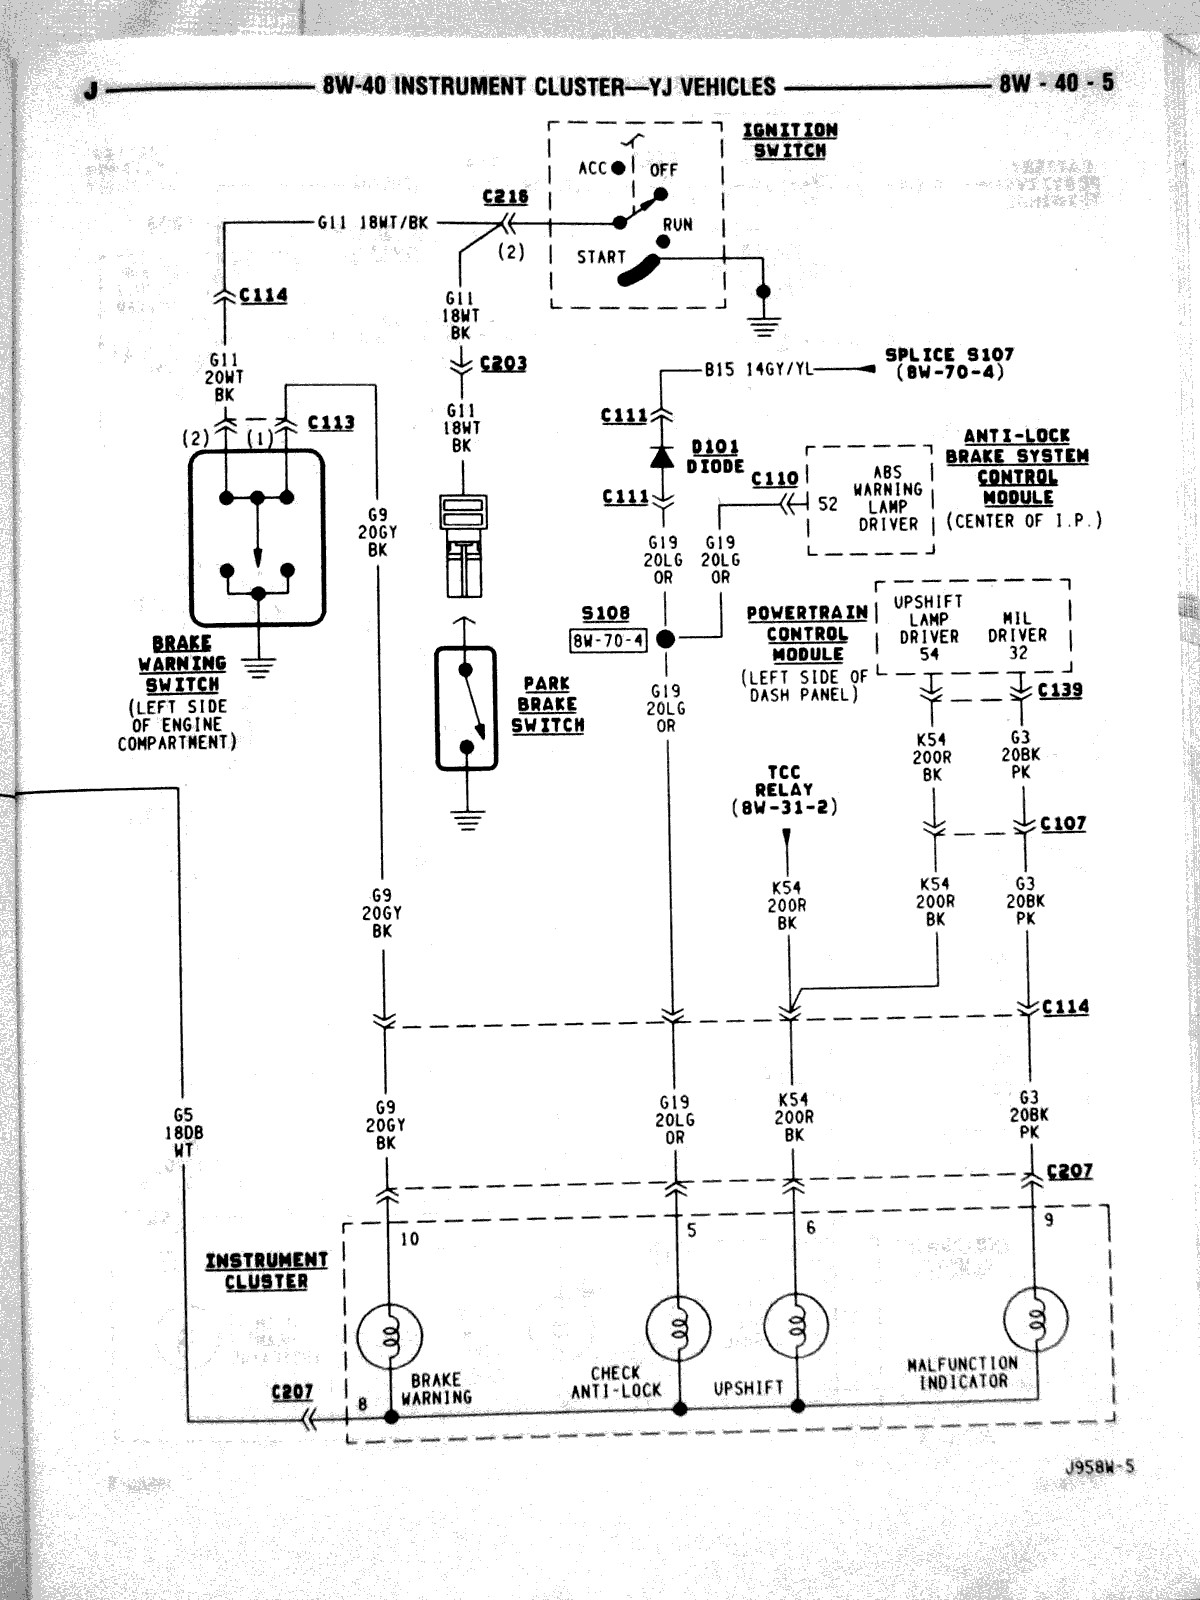 95 wrangler wiring schematic for - wiring diagram cup-explorer-b -  cup-explorer-b.pmov2019.it  pmov2019.it